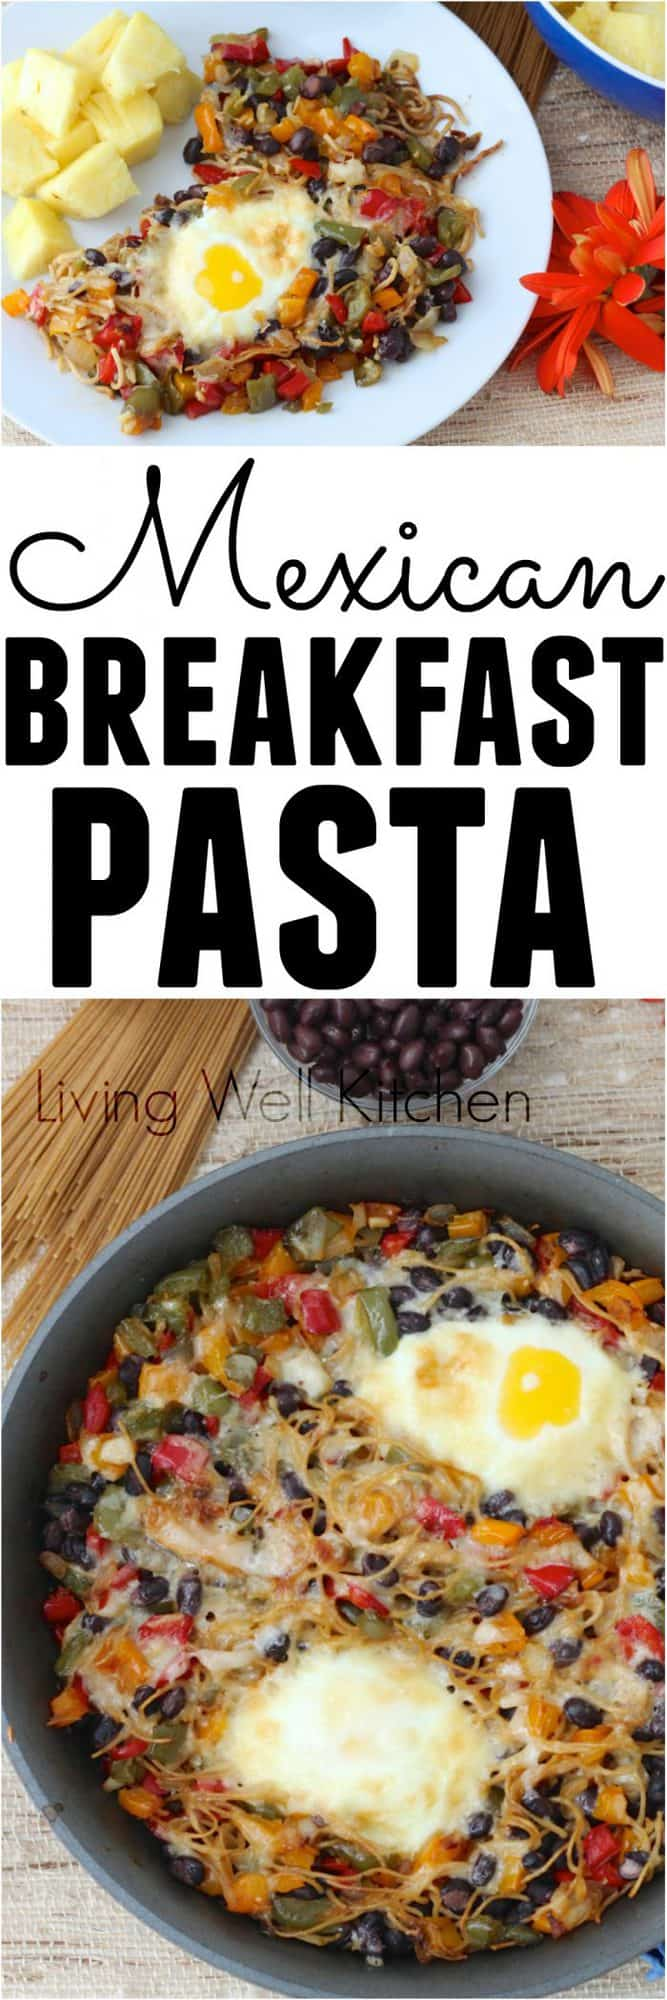 Leftover pasta turns into something incredible with veggies, eggs, and black beans to make this amazing meatless Mexican Breakfast Pasta recipe. Great for a vegetarian dinner, too! (sponsored post)